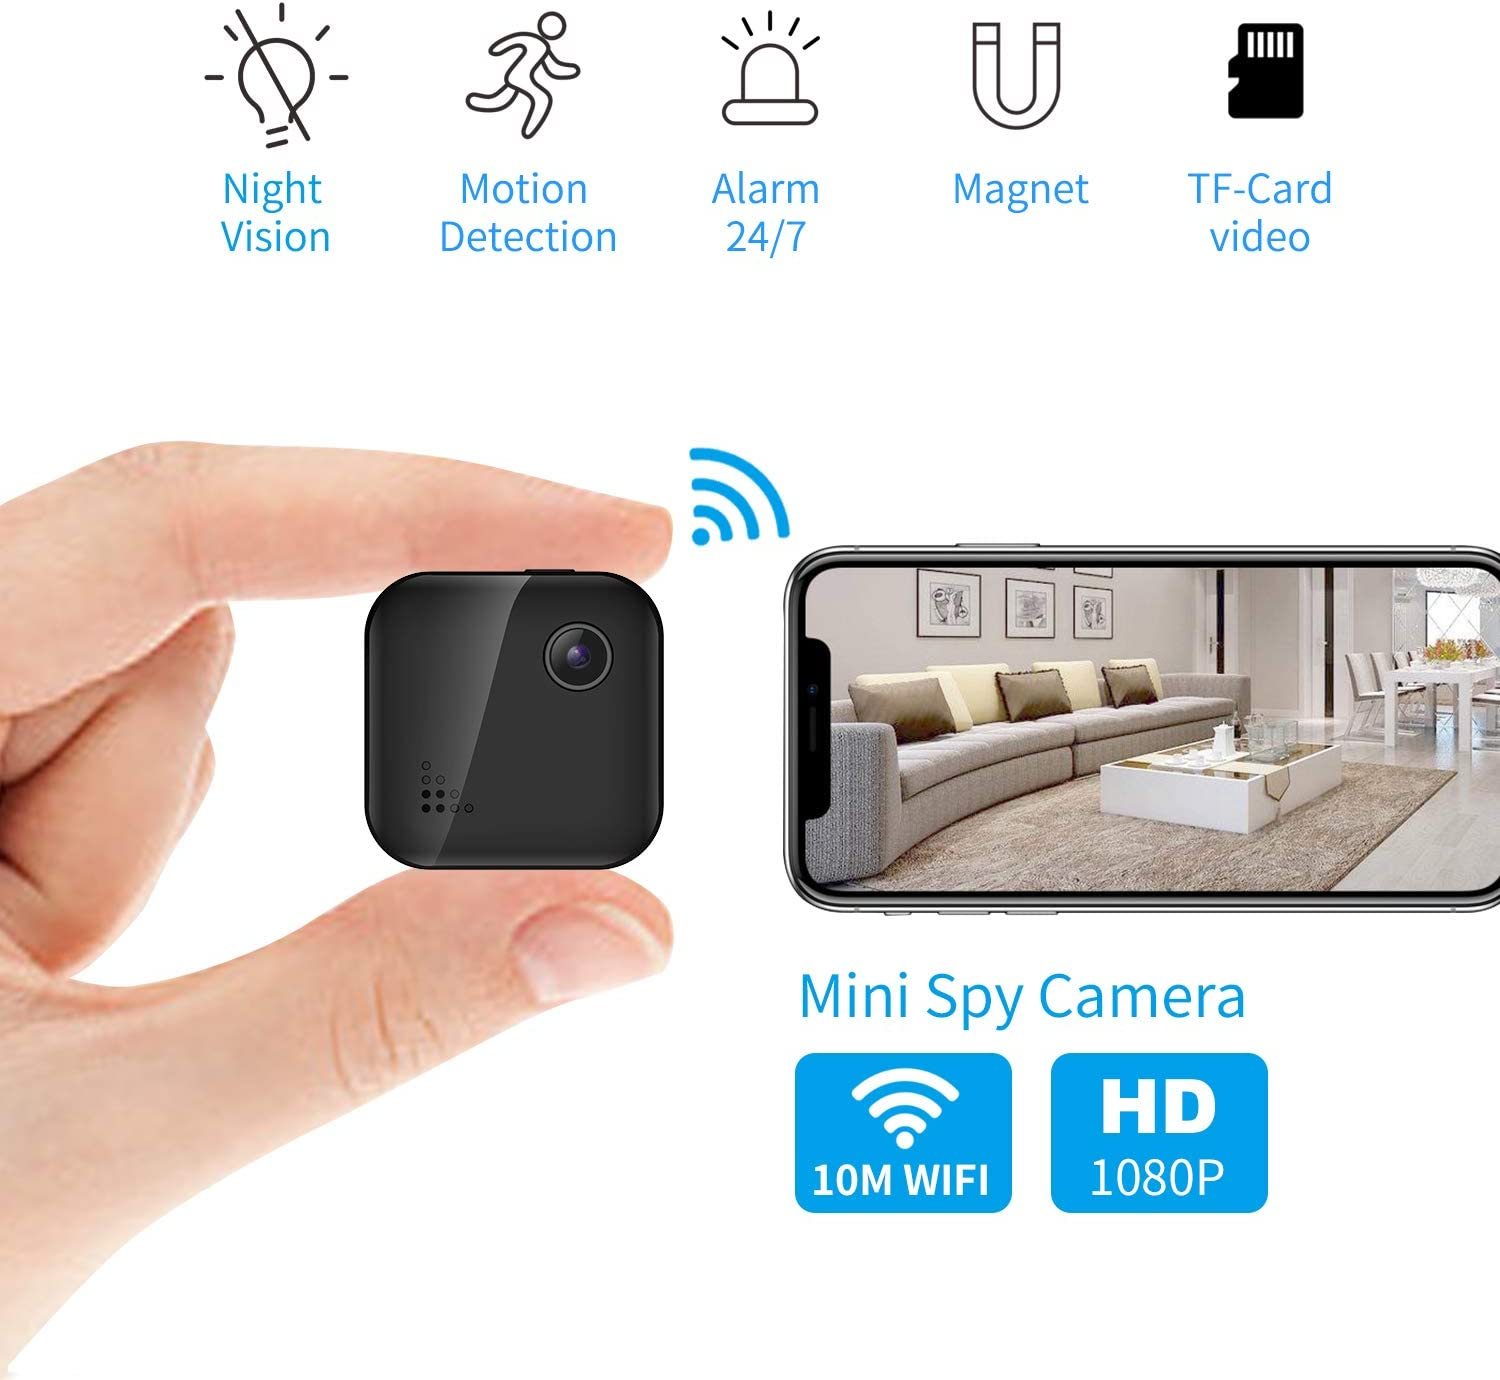 OUCAM Hidden Camera 1080P Mini Spy Camera WiFi Camera with Remote Viewing 380mAH Battery Wireless IP Camera for Baby Pet Nanny Cam with Real-Time Video Night Vision, Phone App with Andriod and iOS